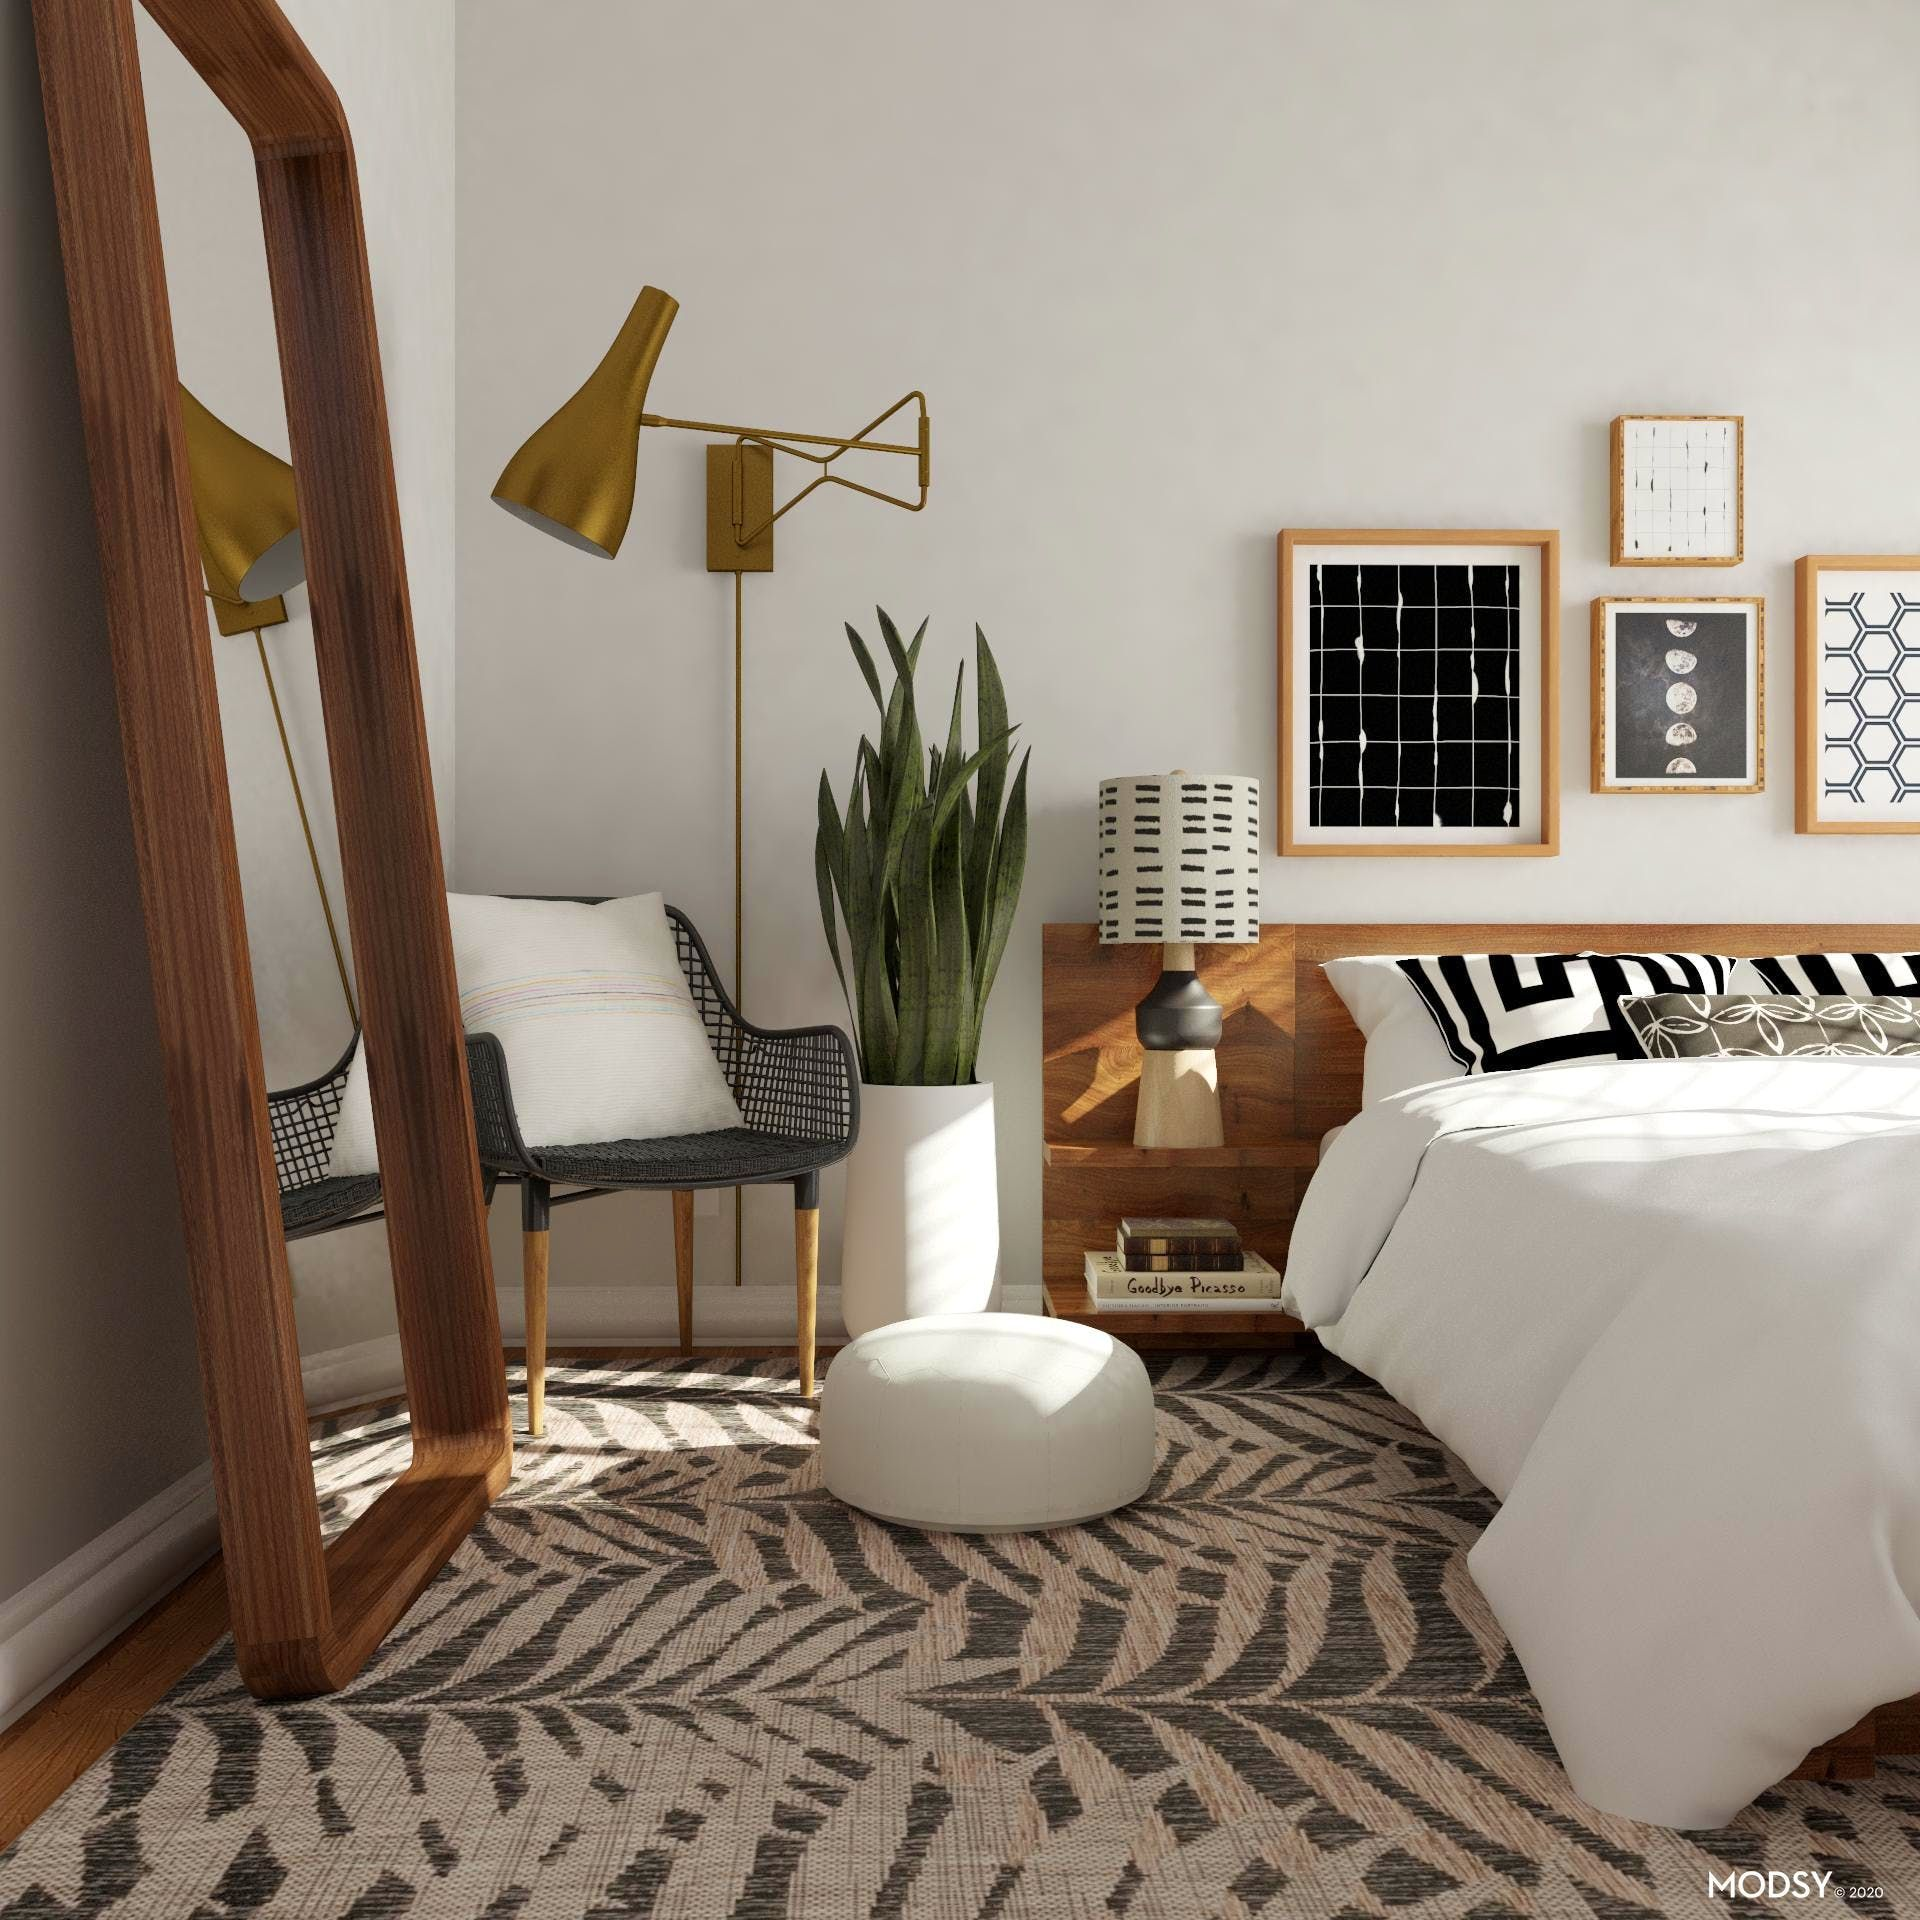 Geomeclectic Bedroom Mid Century Modern Style Bedroom Design Ideas Eclectic Bedroom Design Modern Style Bedroom Eclectic Bedroom